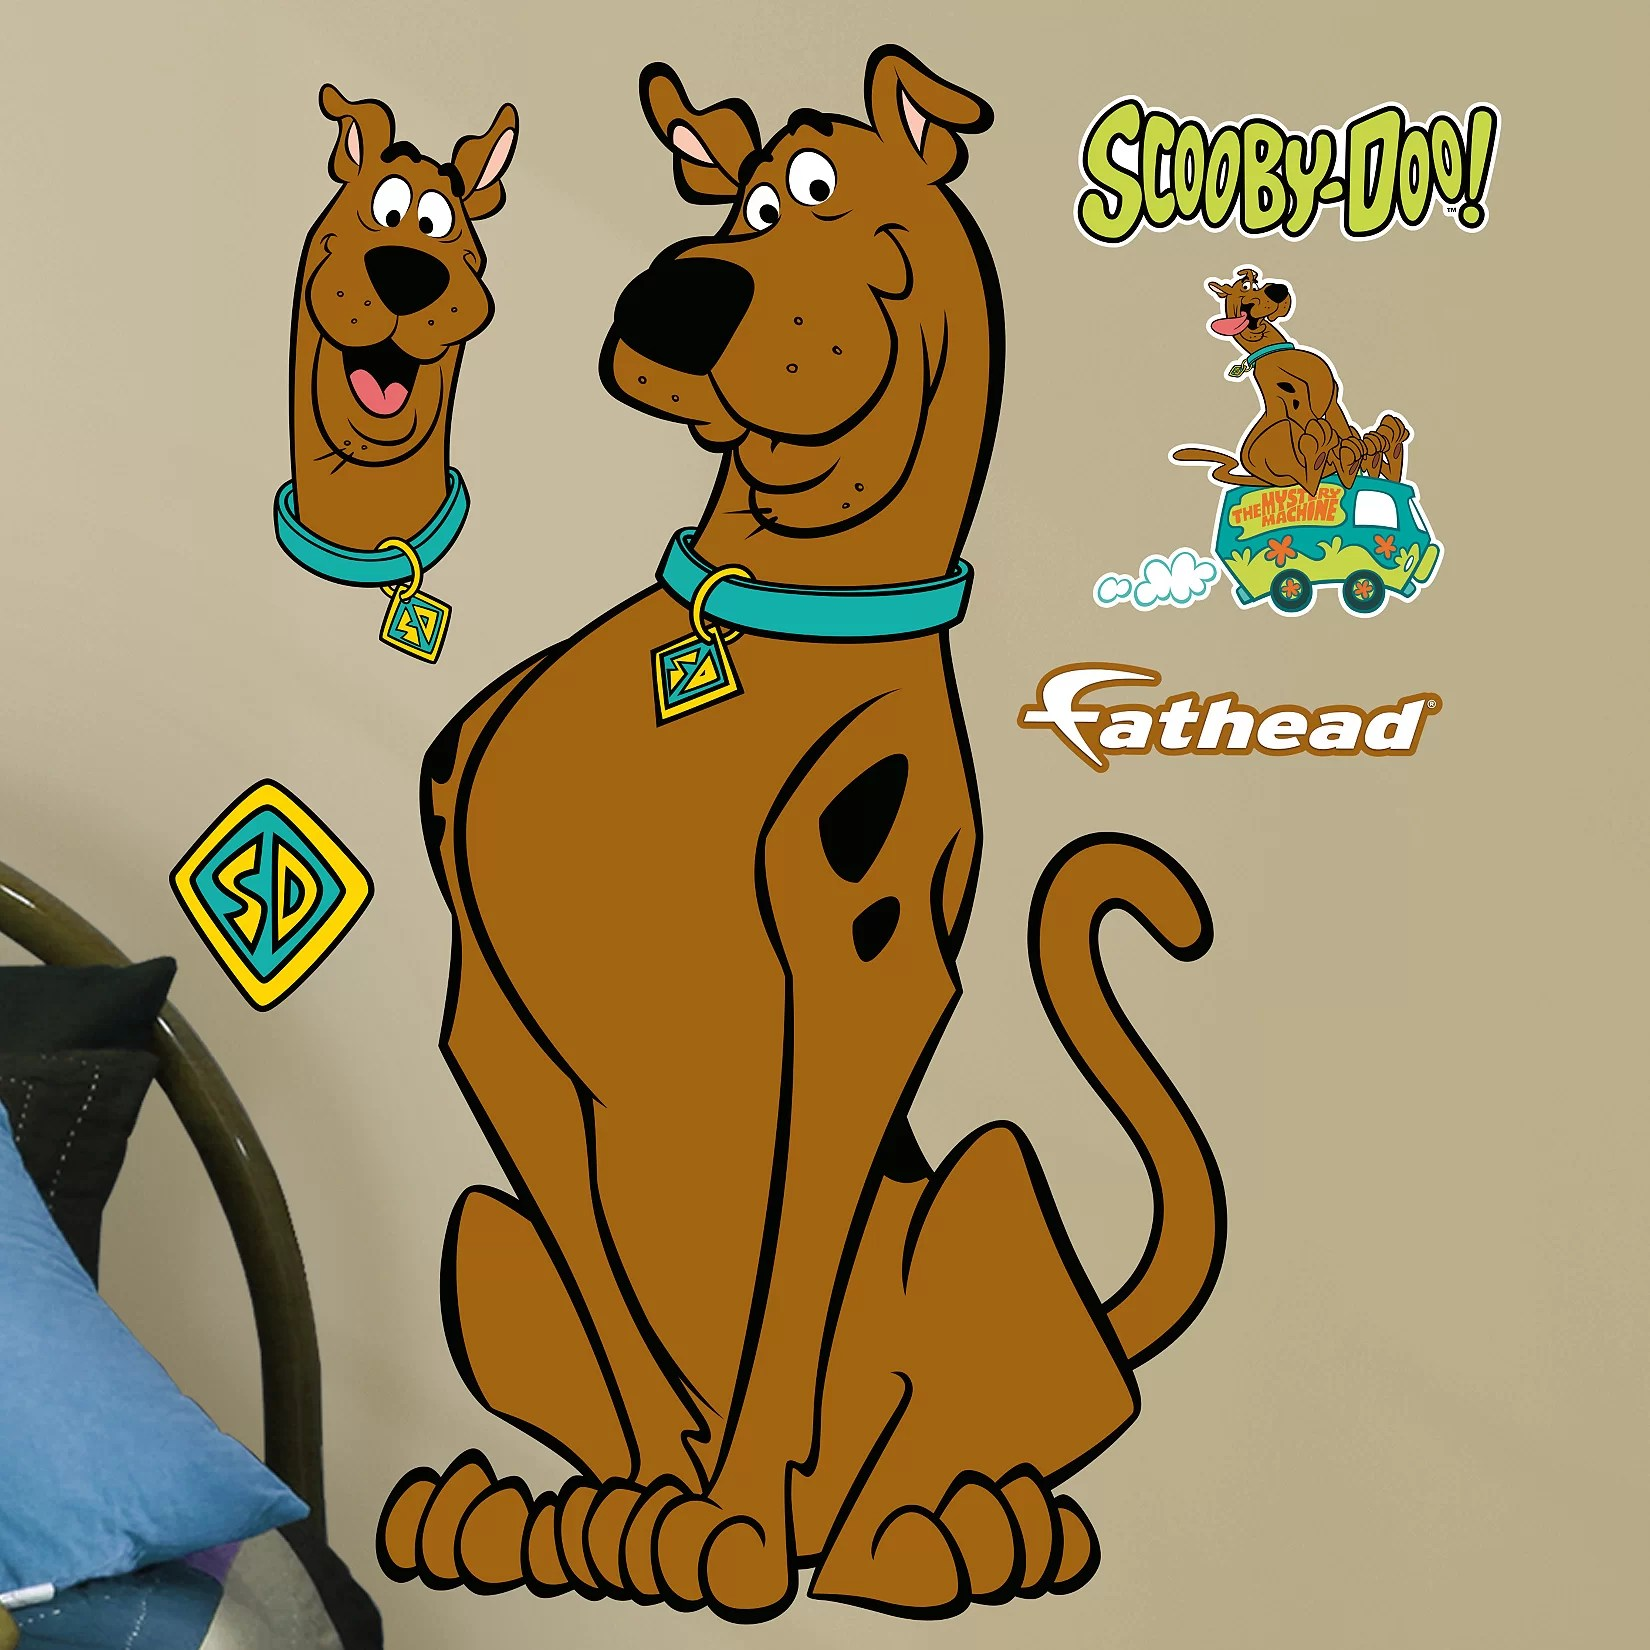 scooby doo chair wooden folding table and chairs warner bros junior peel stick wall decal